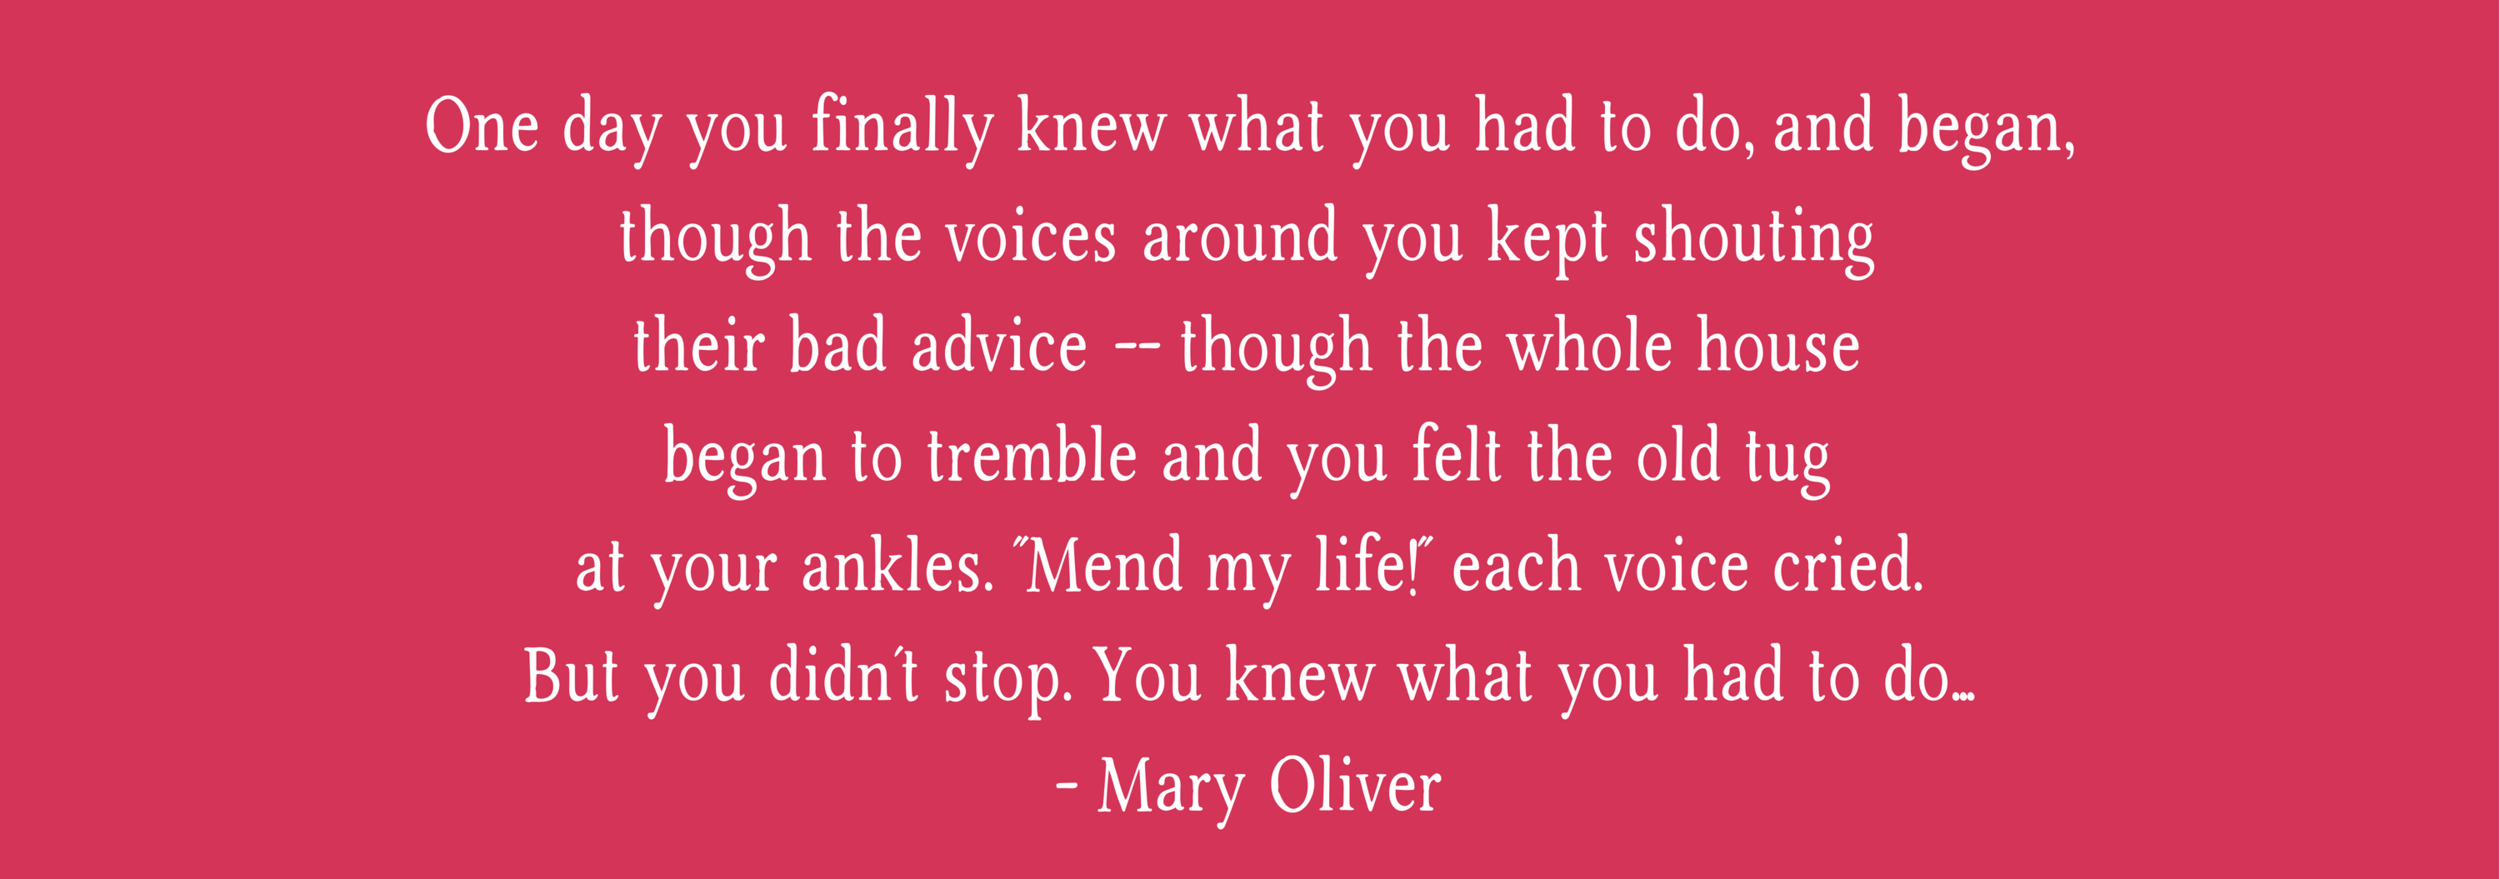 MaryOliverquote.png